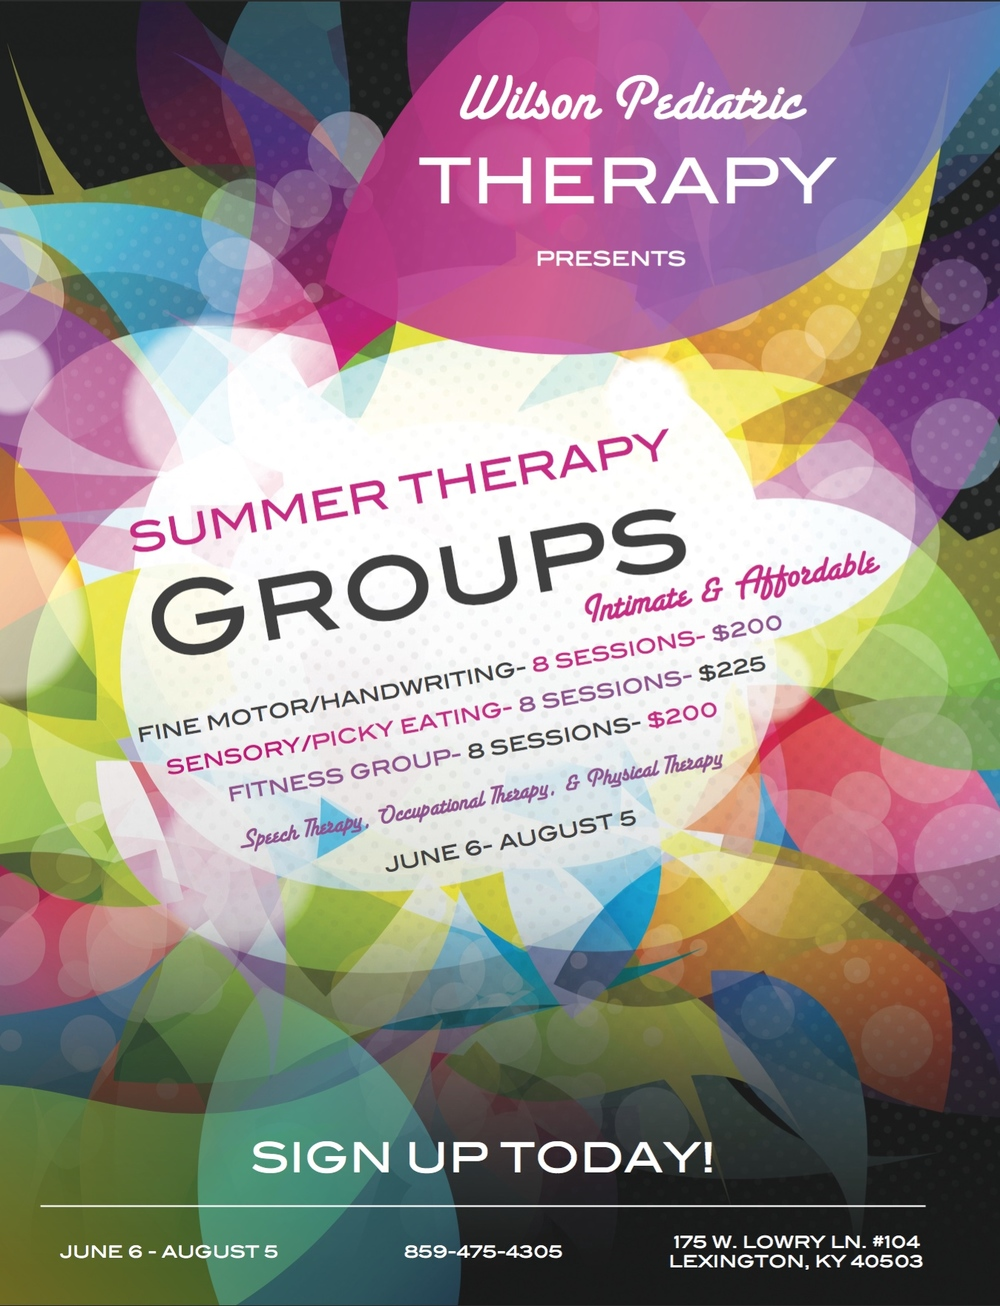 Click the image above to view our full summer group info packet!